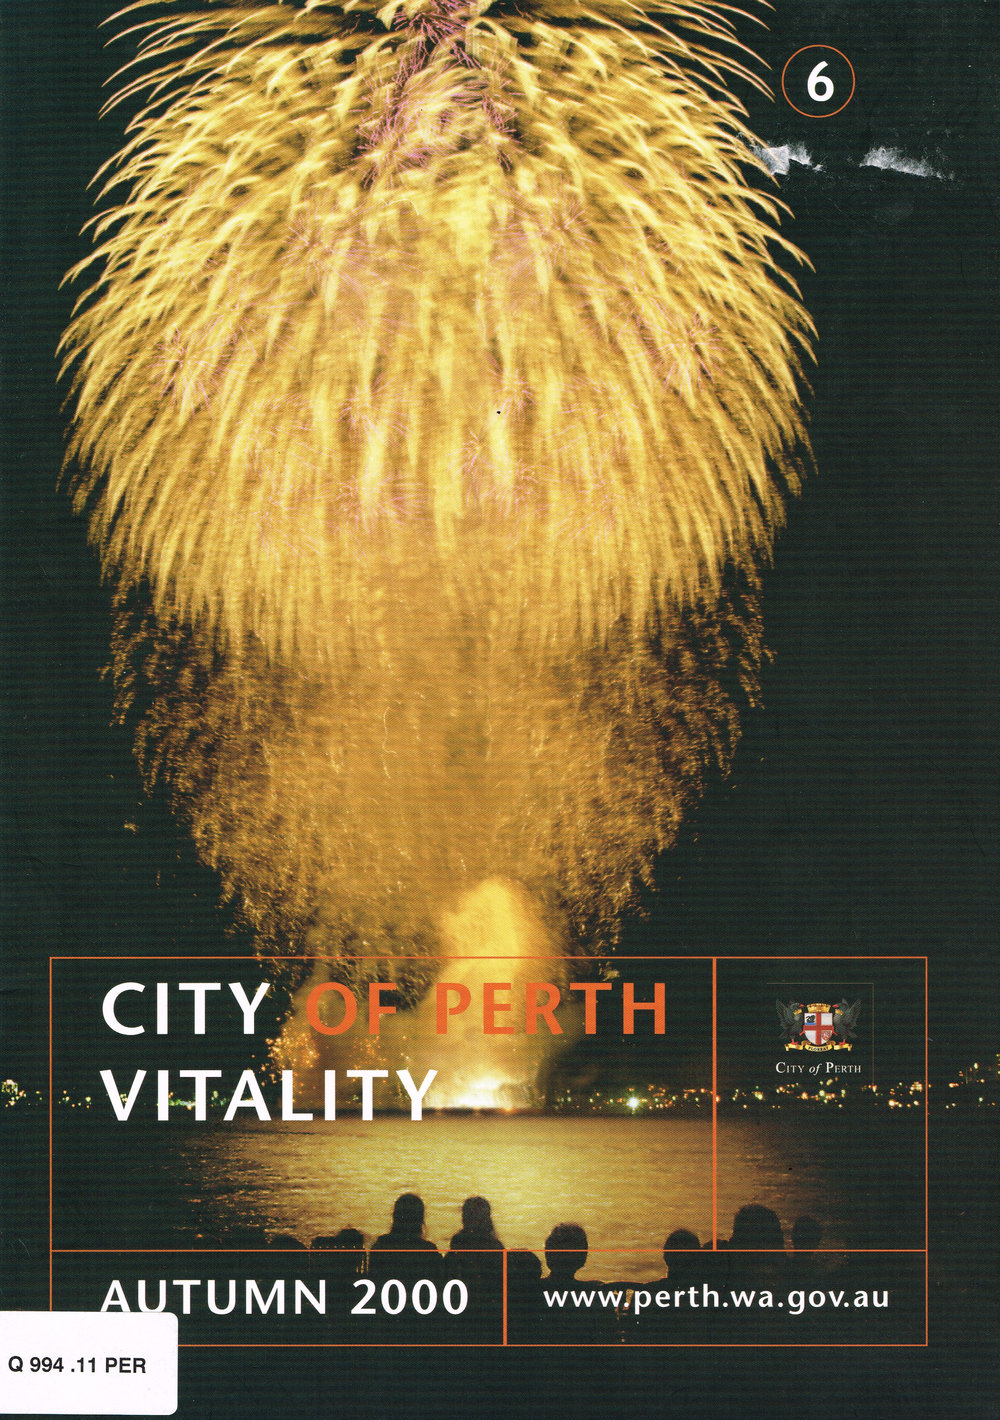 City of Perth Vitality : Autumn 2000  City of Perth, April 2000